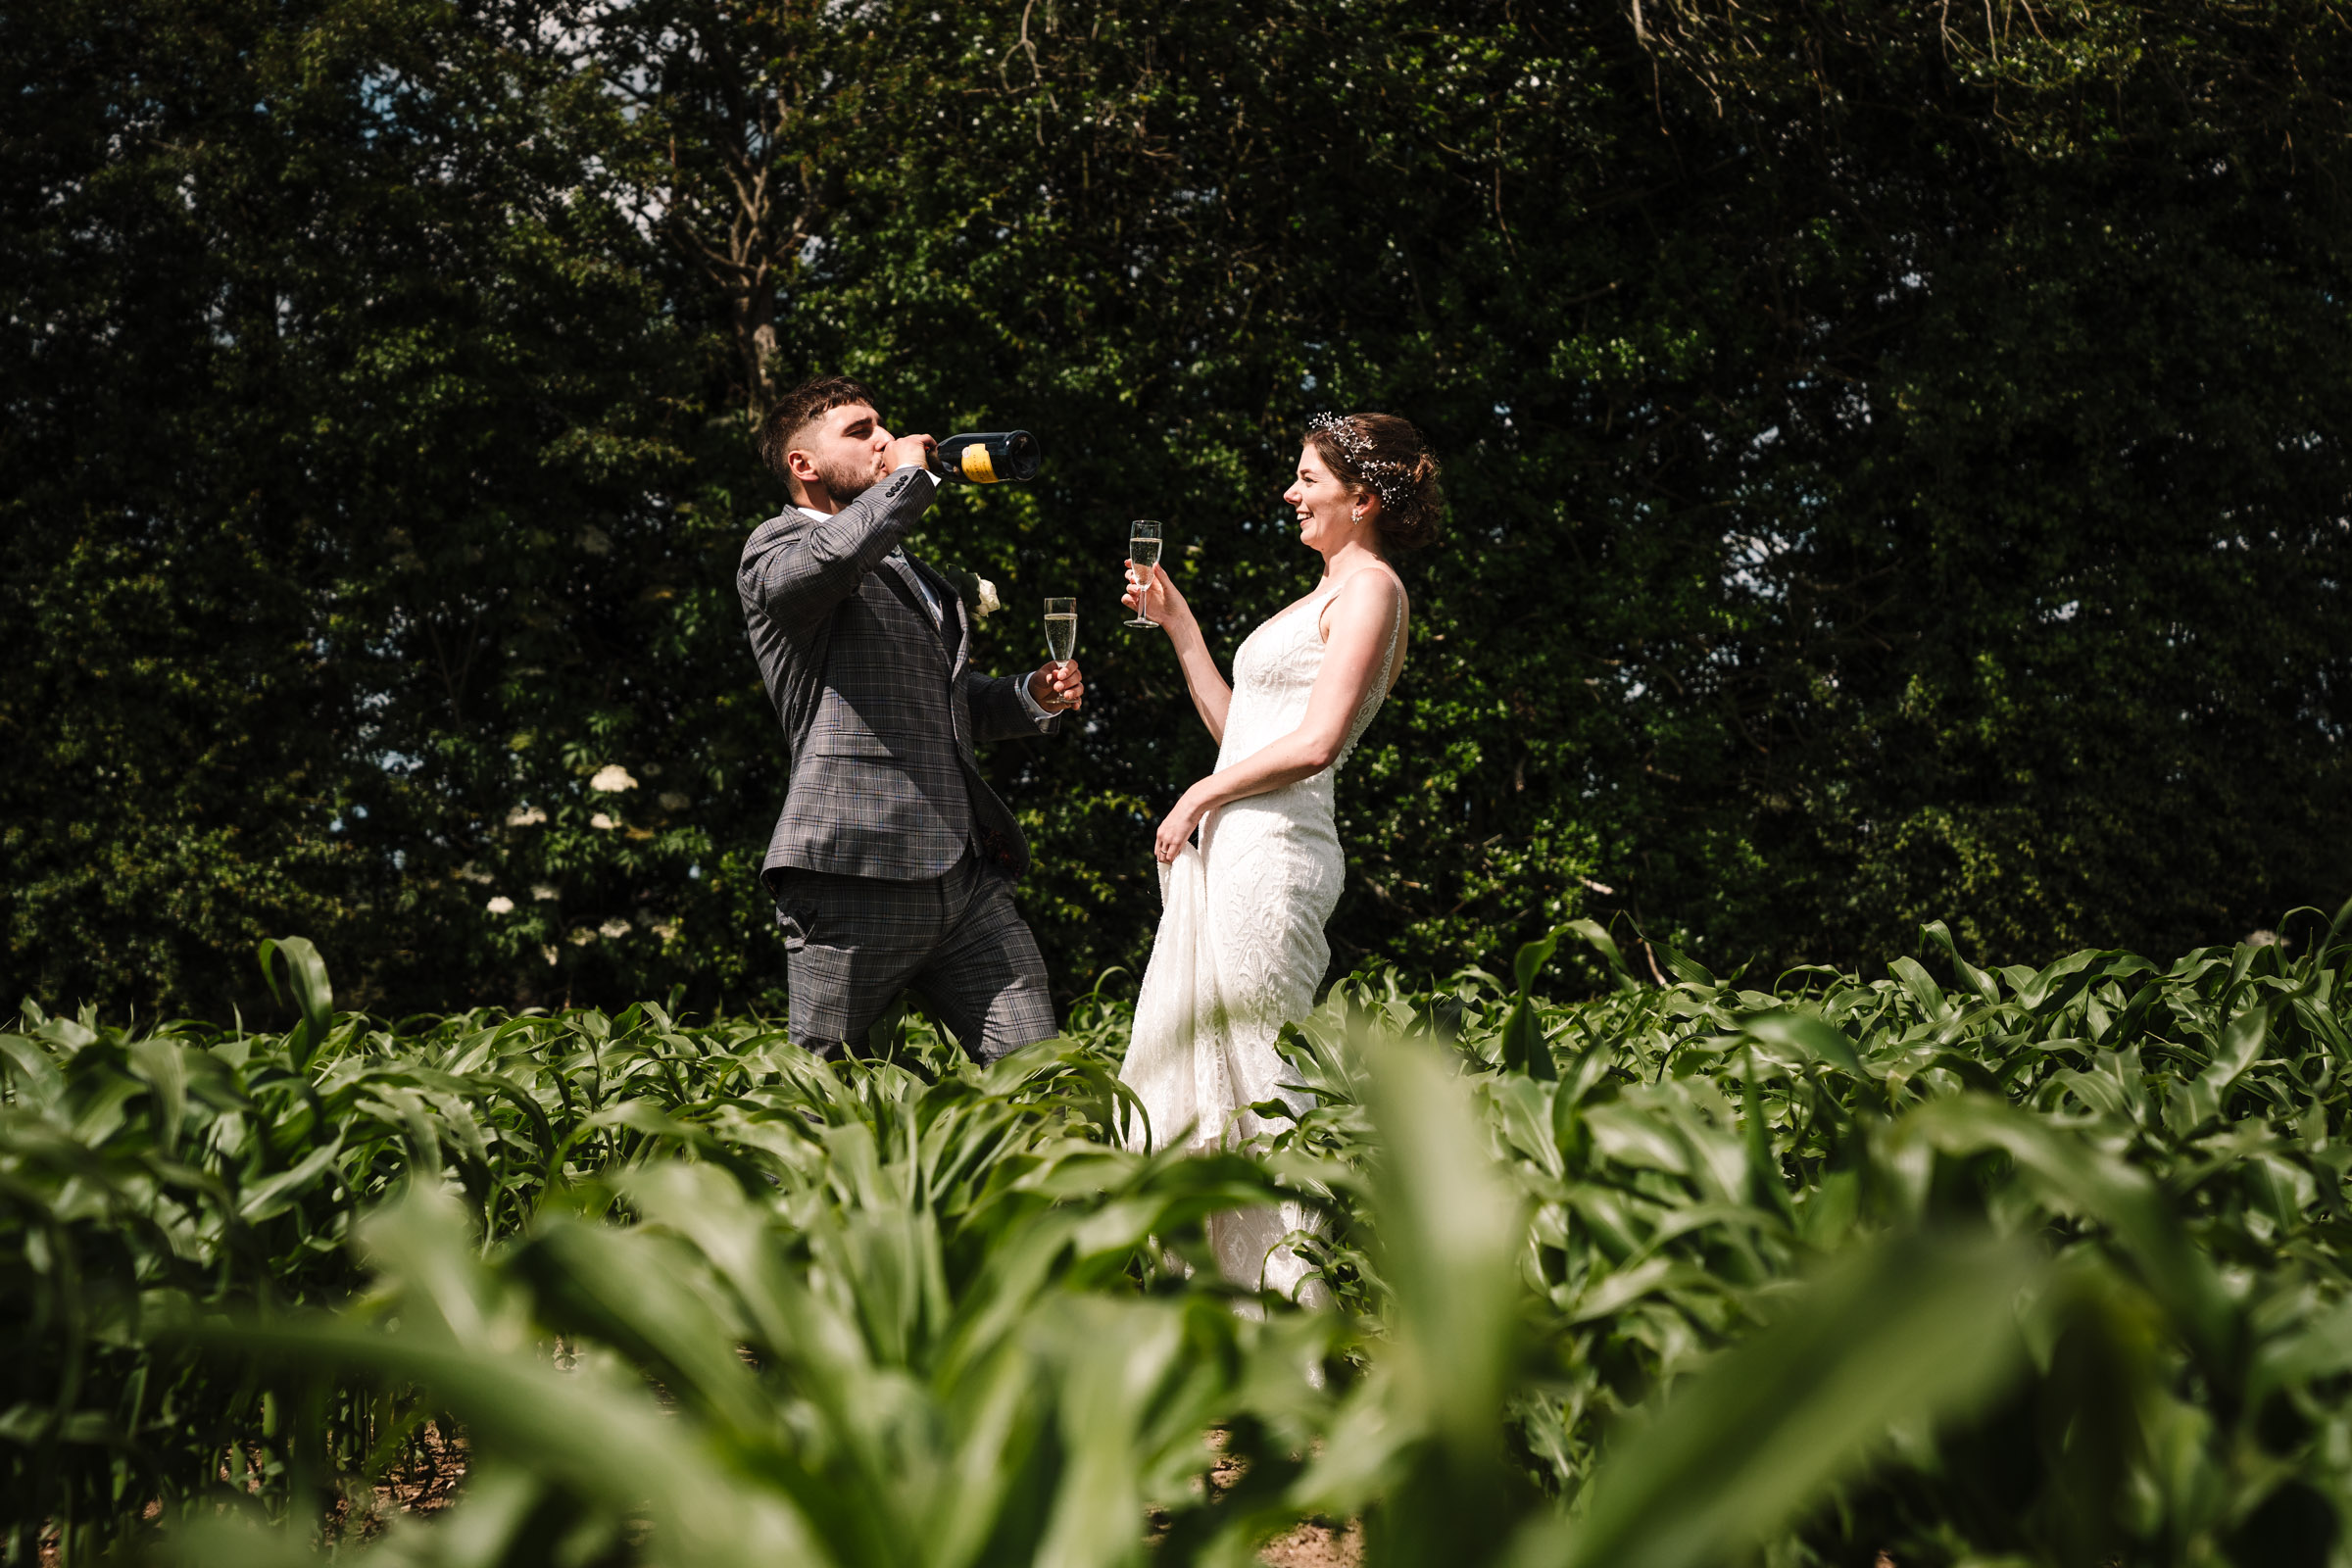 bride and groom drinking champagne in a field